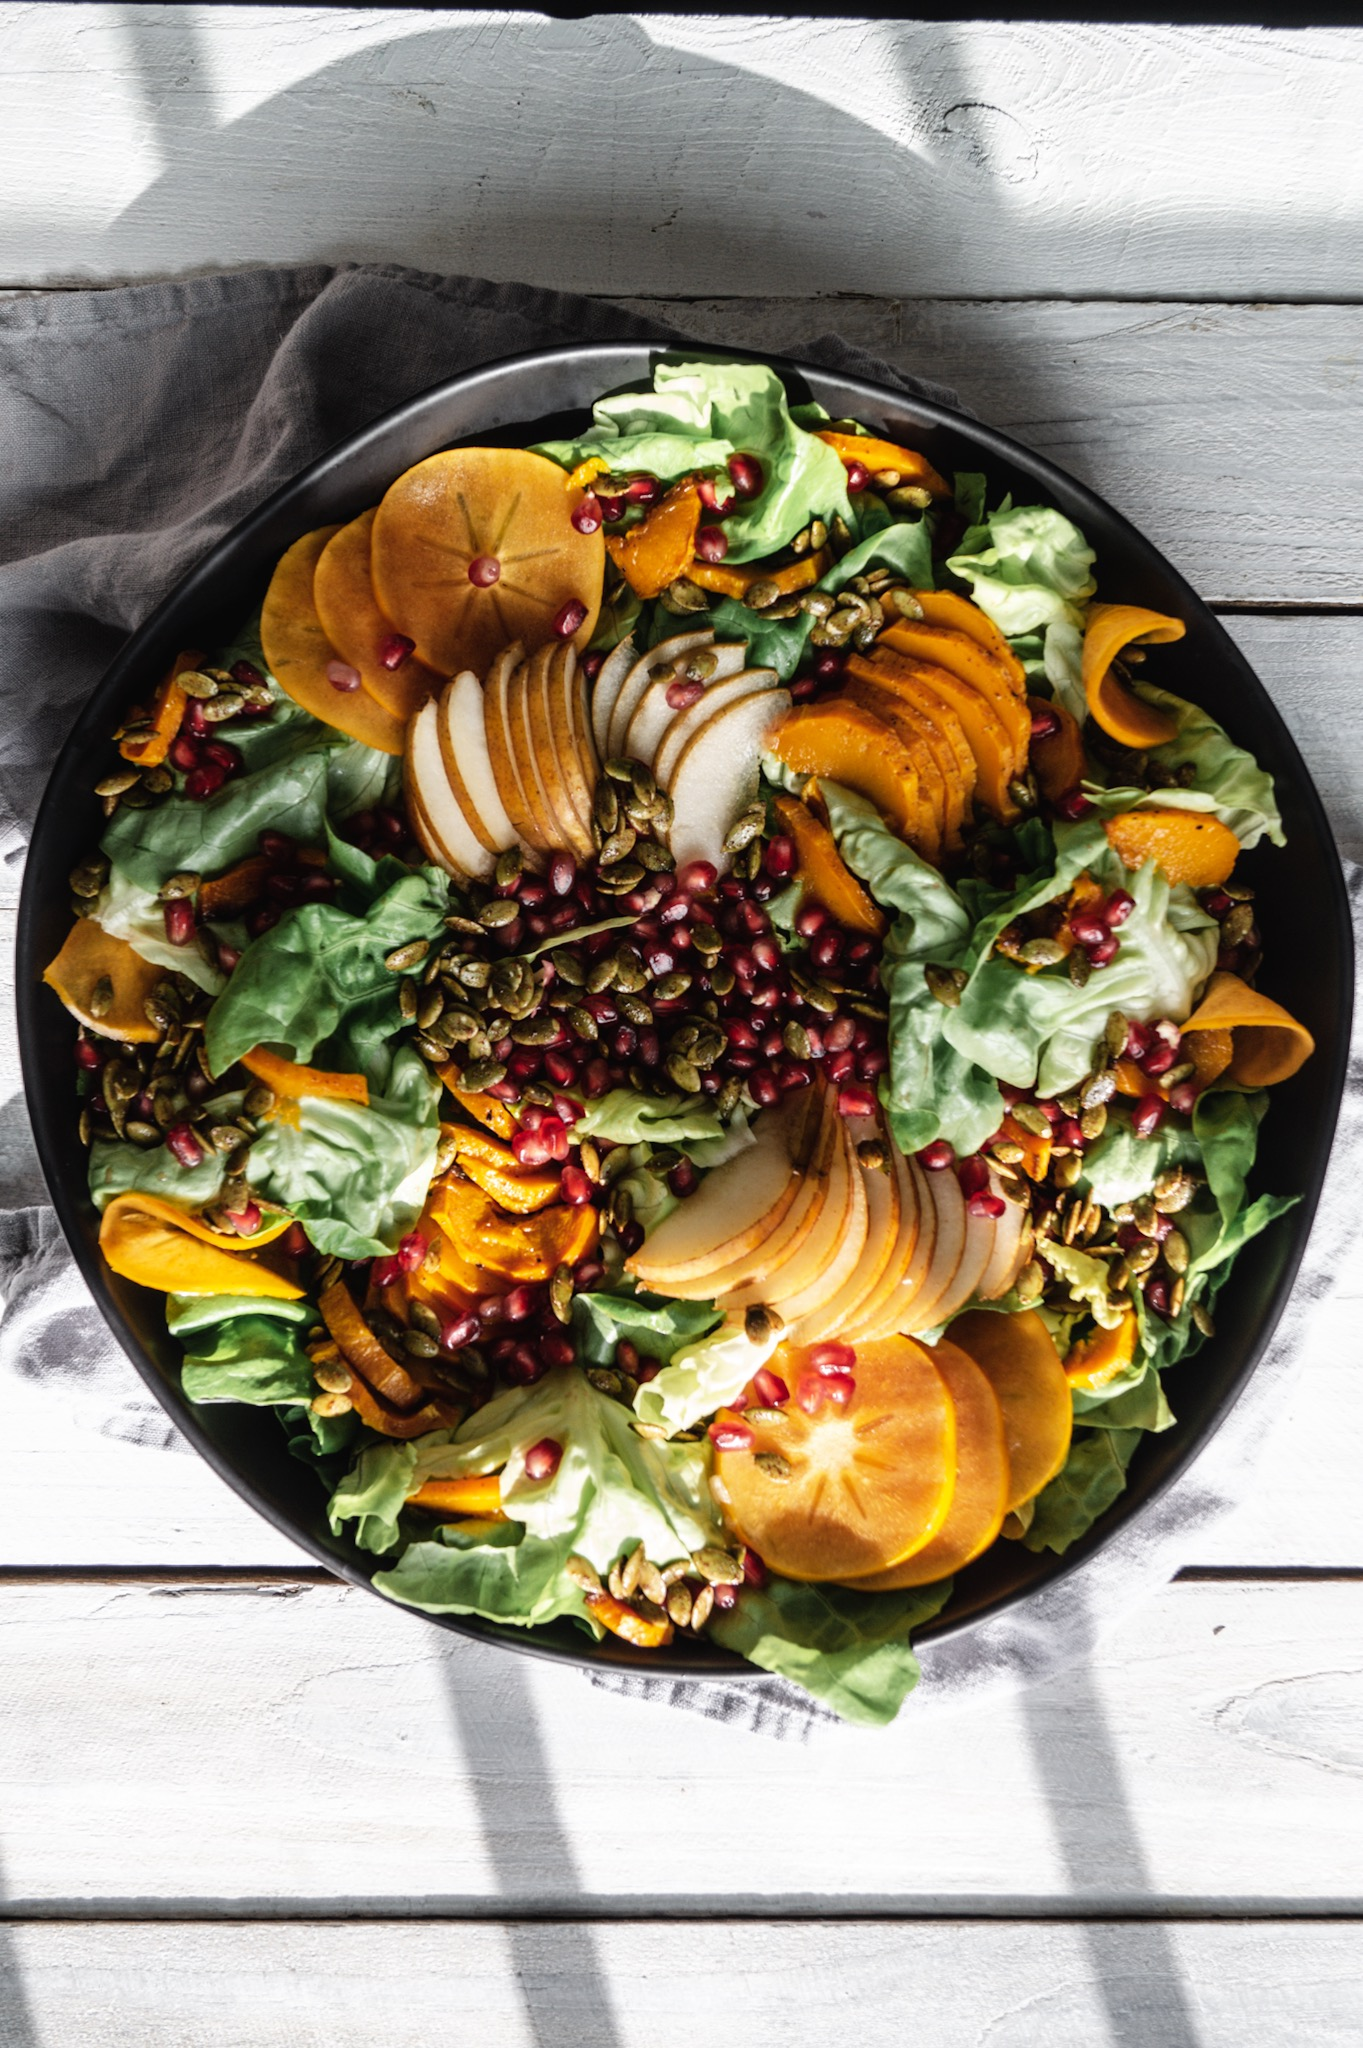 Fall Harvest salad recipe with roasted honeynut squash, pepitas, and pears.